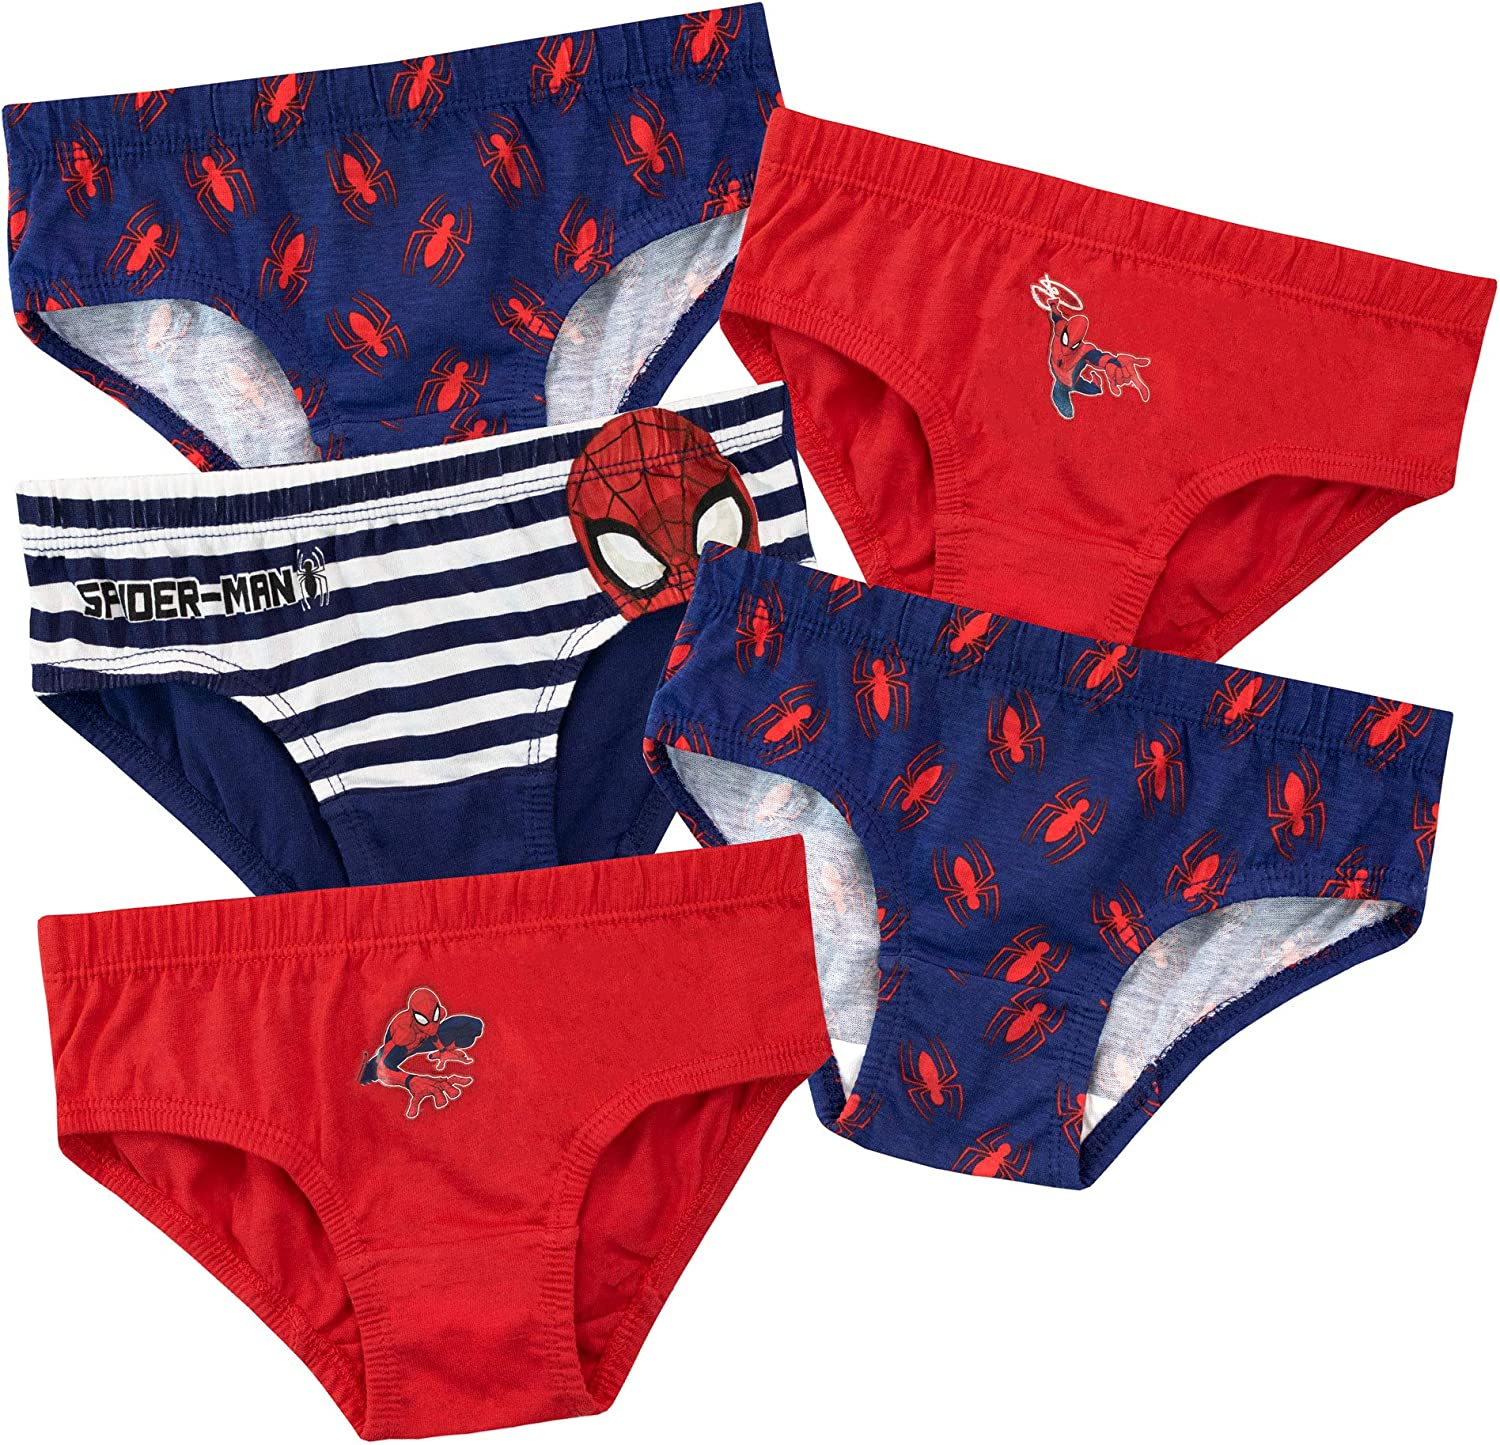 boys underpants pants /& vest set spiderman red /& white holidays holiday